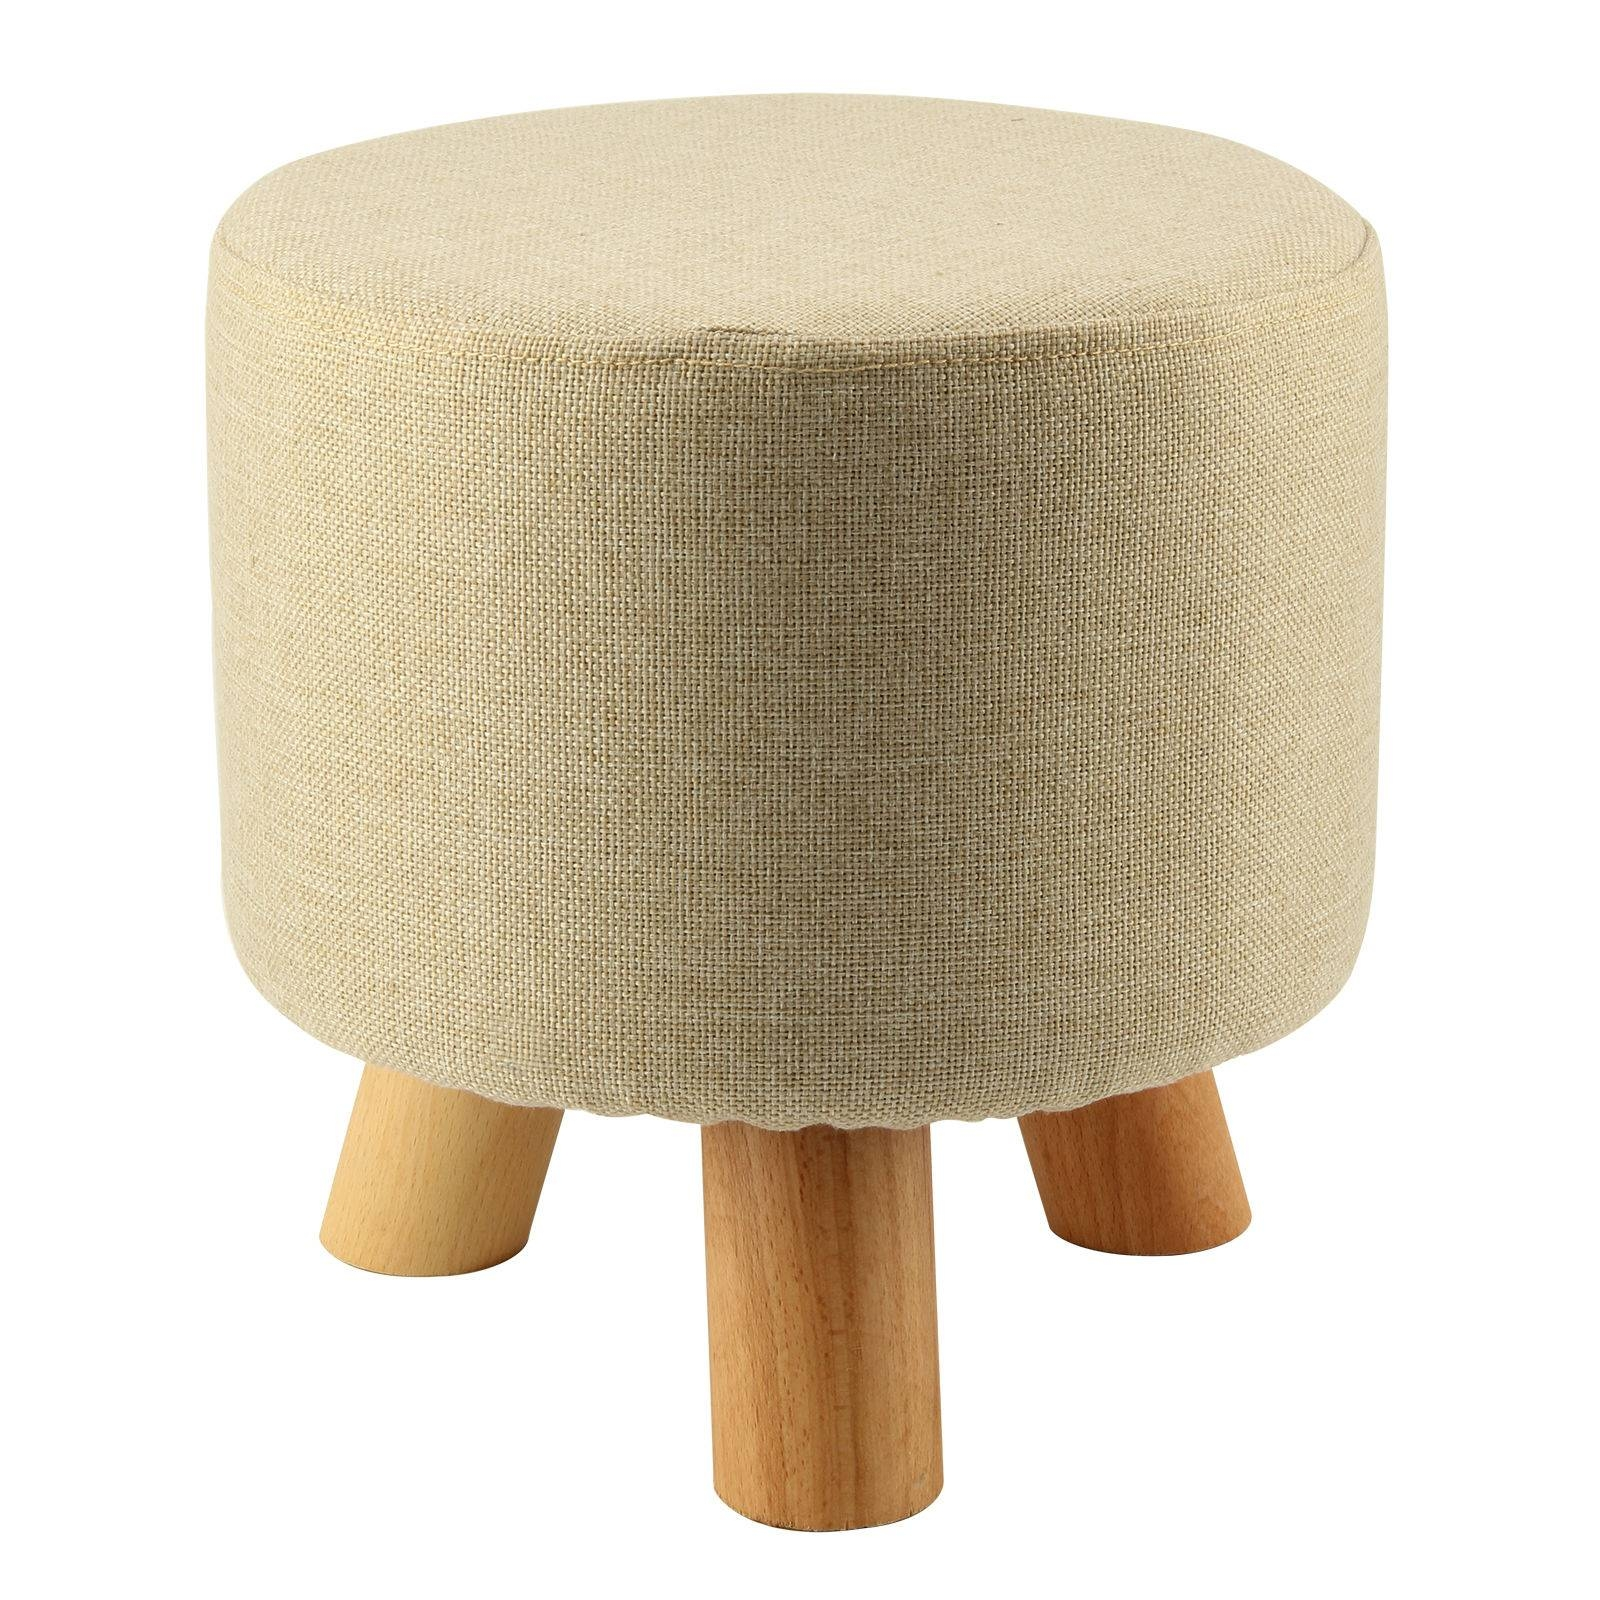 Online Get Cheap Round Footstool -Aliexpress | Alibaba Group in Upholstered Footstools (Image 13 of 30)